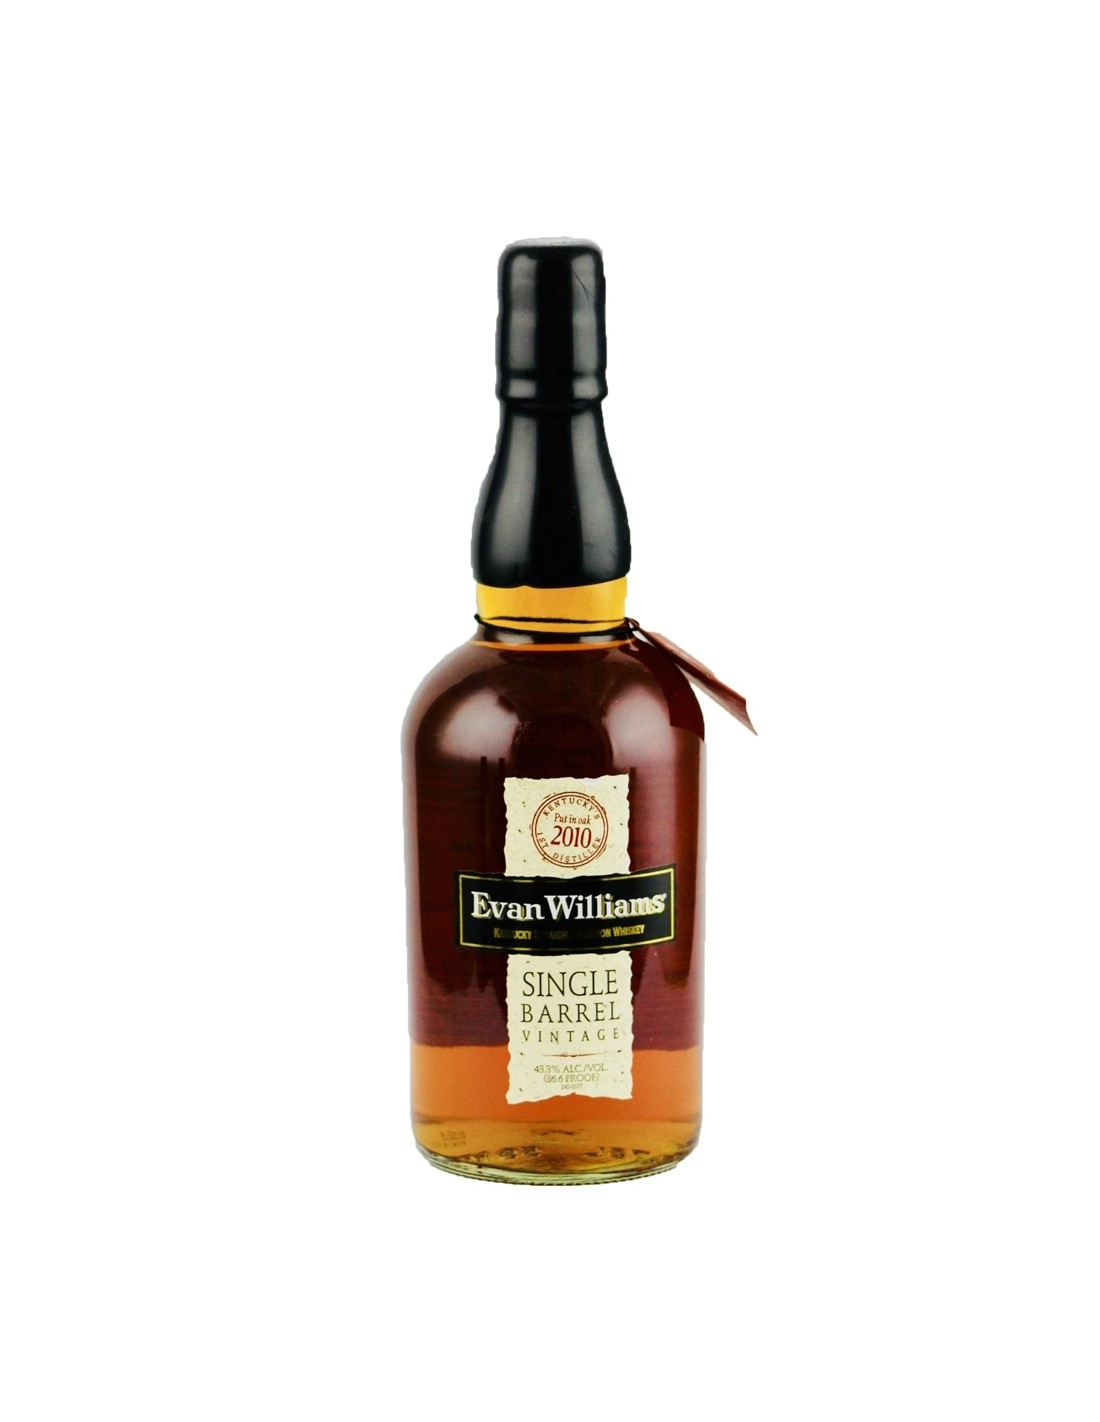 Whisky Bourbon Evan Williams Single Barrel Vintage, 43.3% alc., 0.7L, America